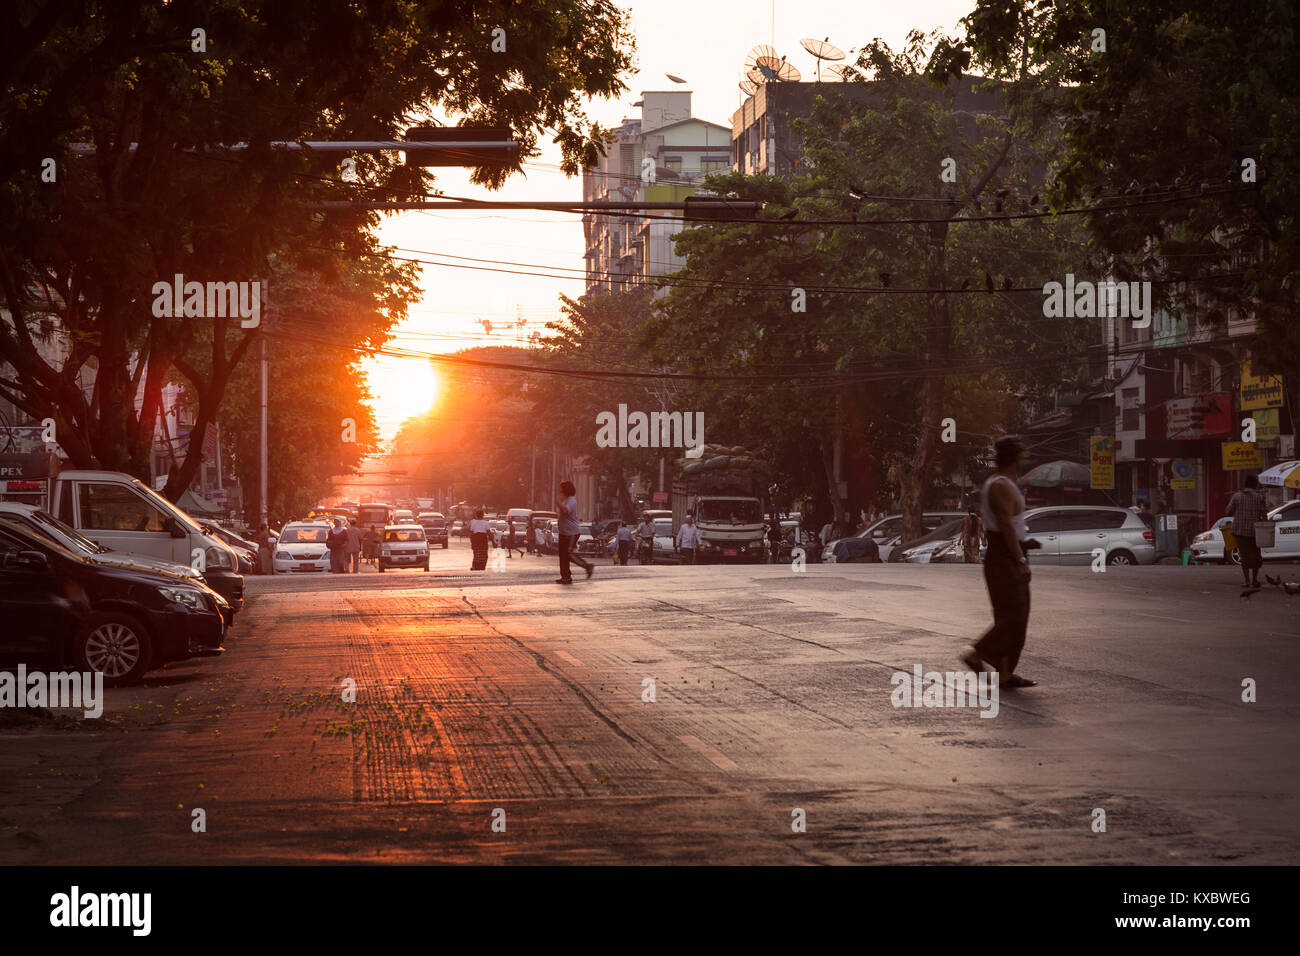 Some people and traffic on the Merchant Road at the downtown in Yangon (Rangoon), Myanmar (Burma), at sunrise. Stock Photo